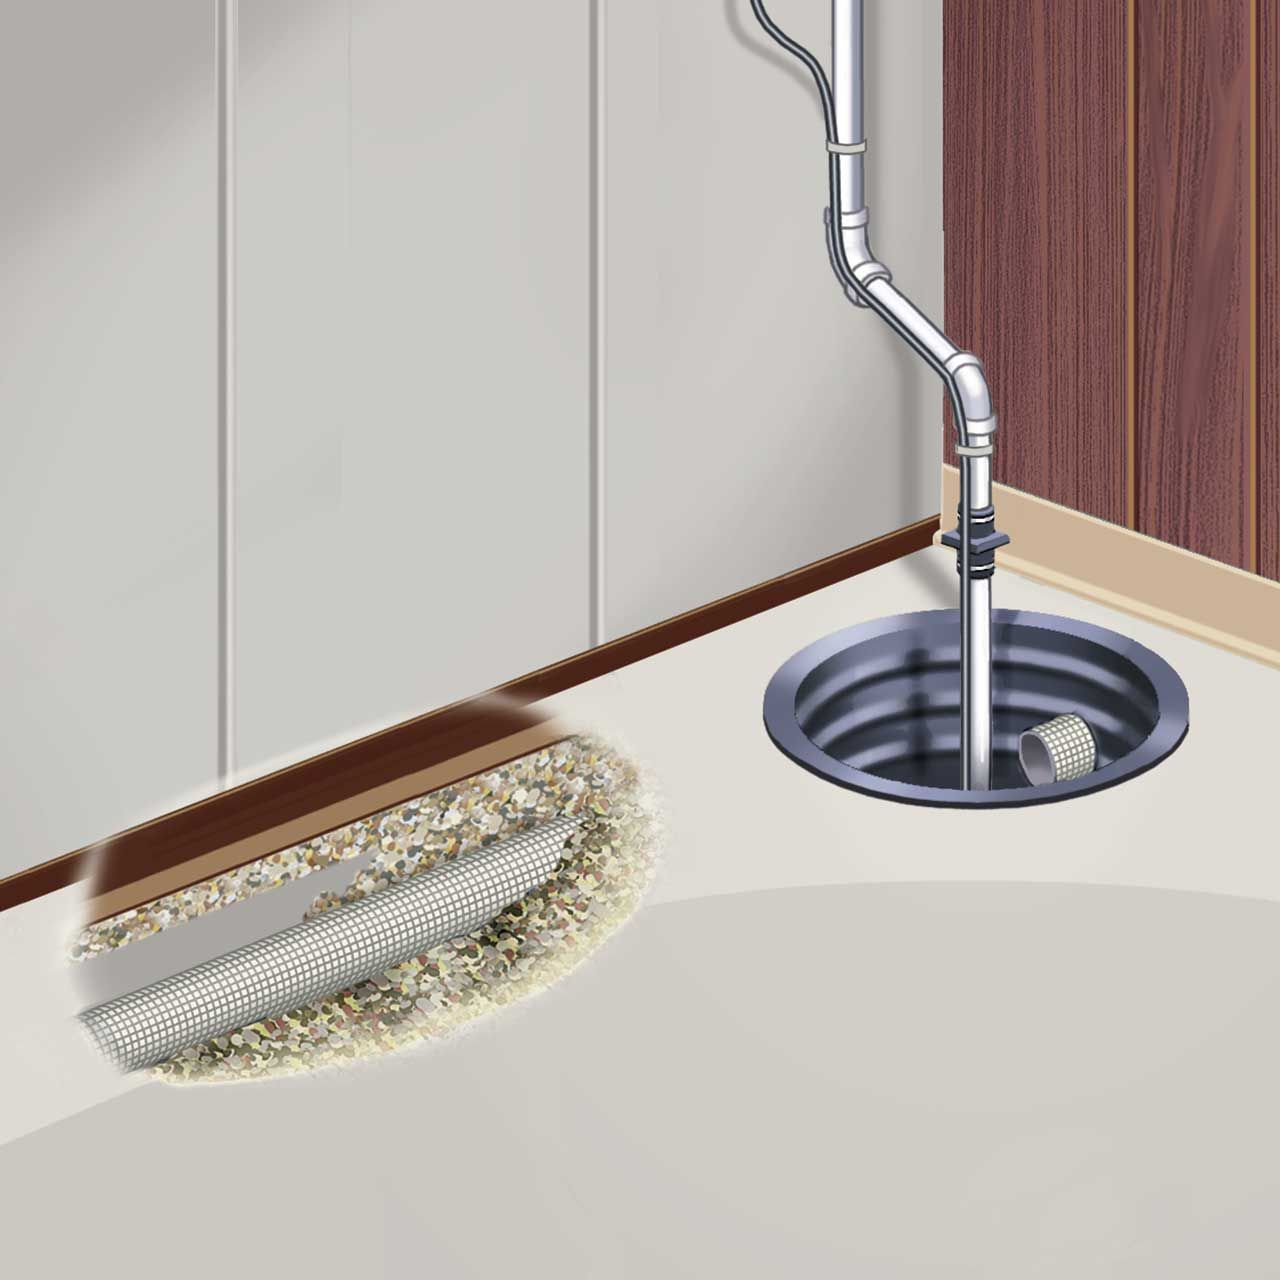 Drain Eze Basement Waterproofing Footing System: Interior Drain Tile System